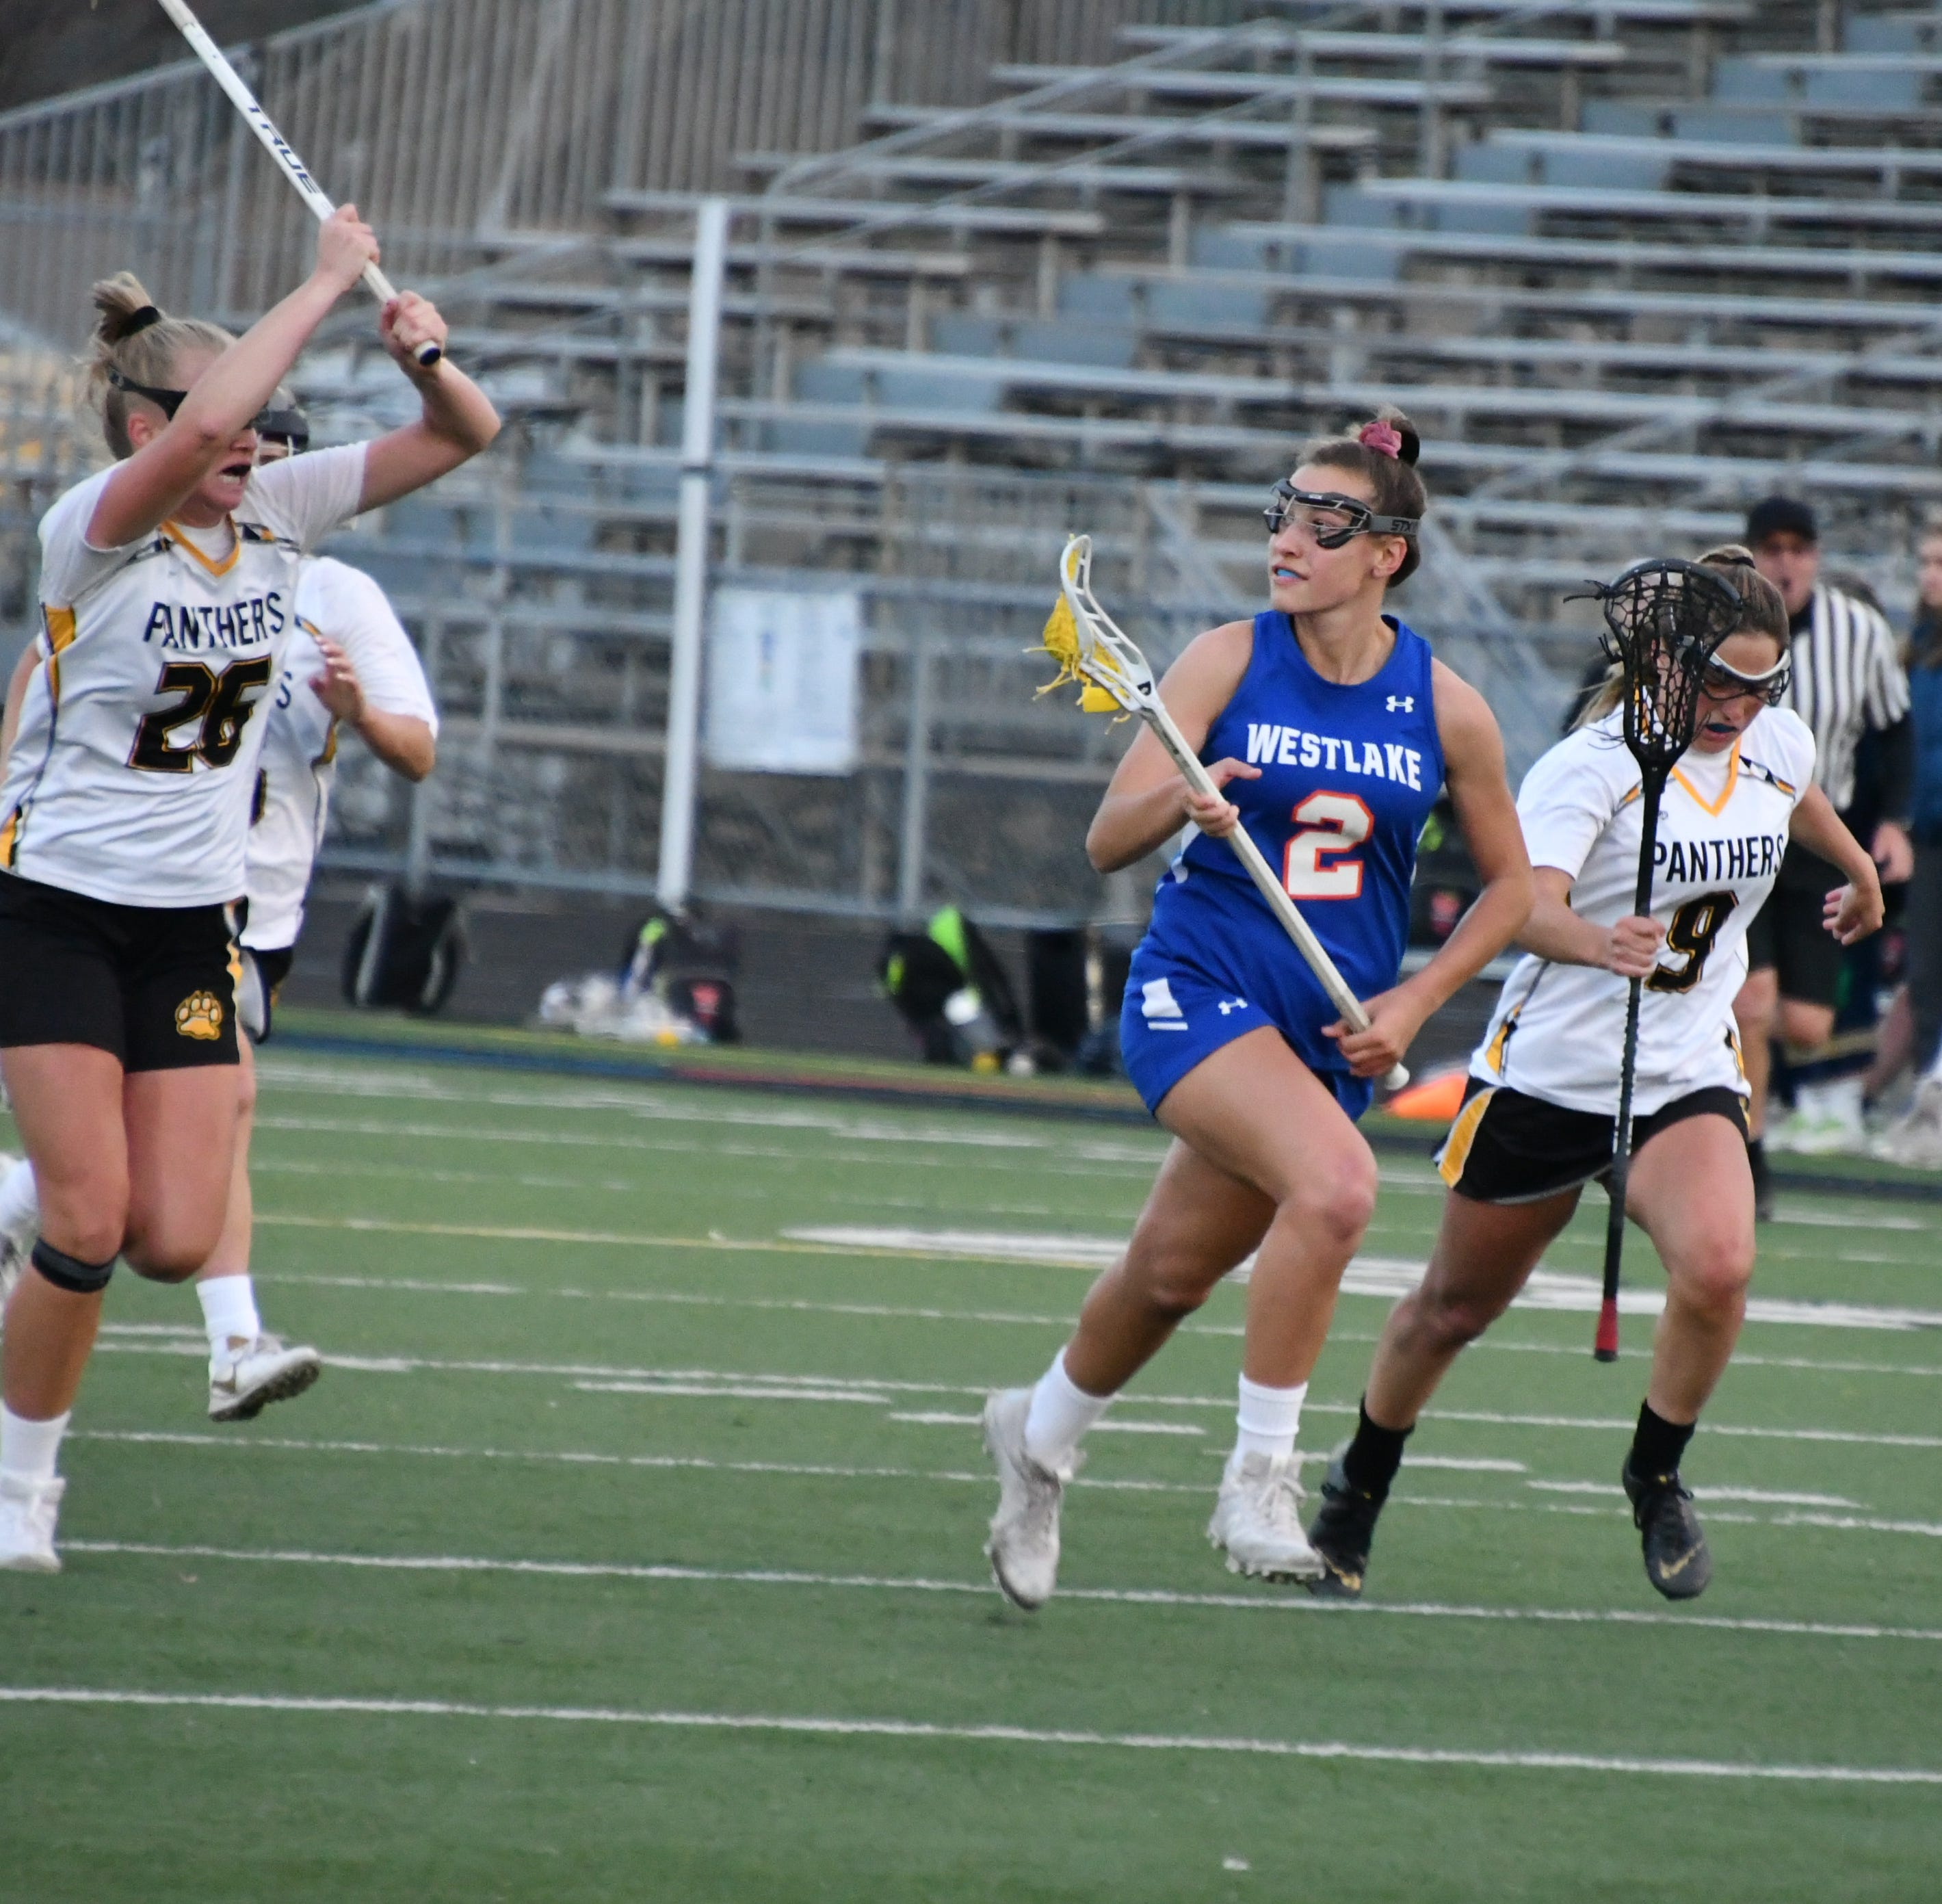 Potential host Westlake among girls lacrosse teams eyeing playoff final